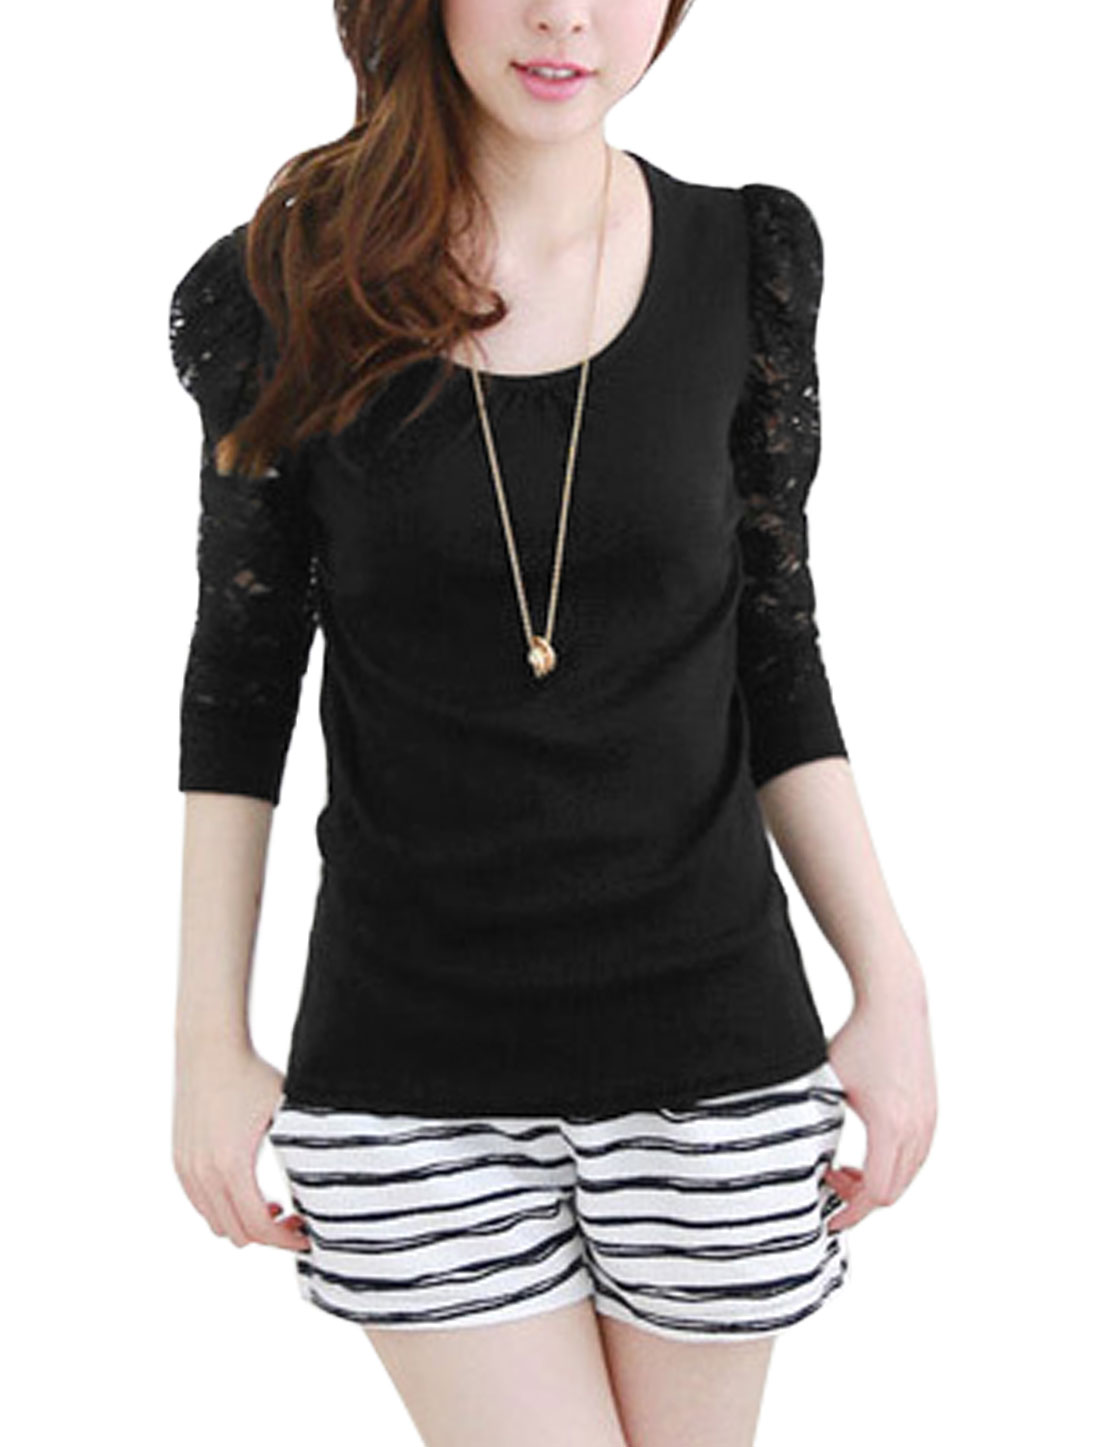 Ladies Black 3/4 Sleeves Round Neck Pullover Lace Splice Shirred Detail Top S